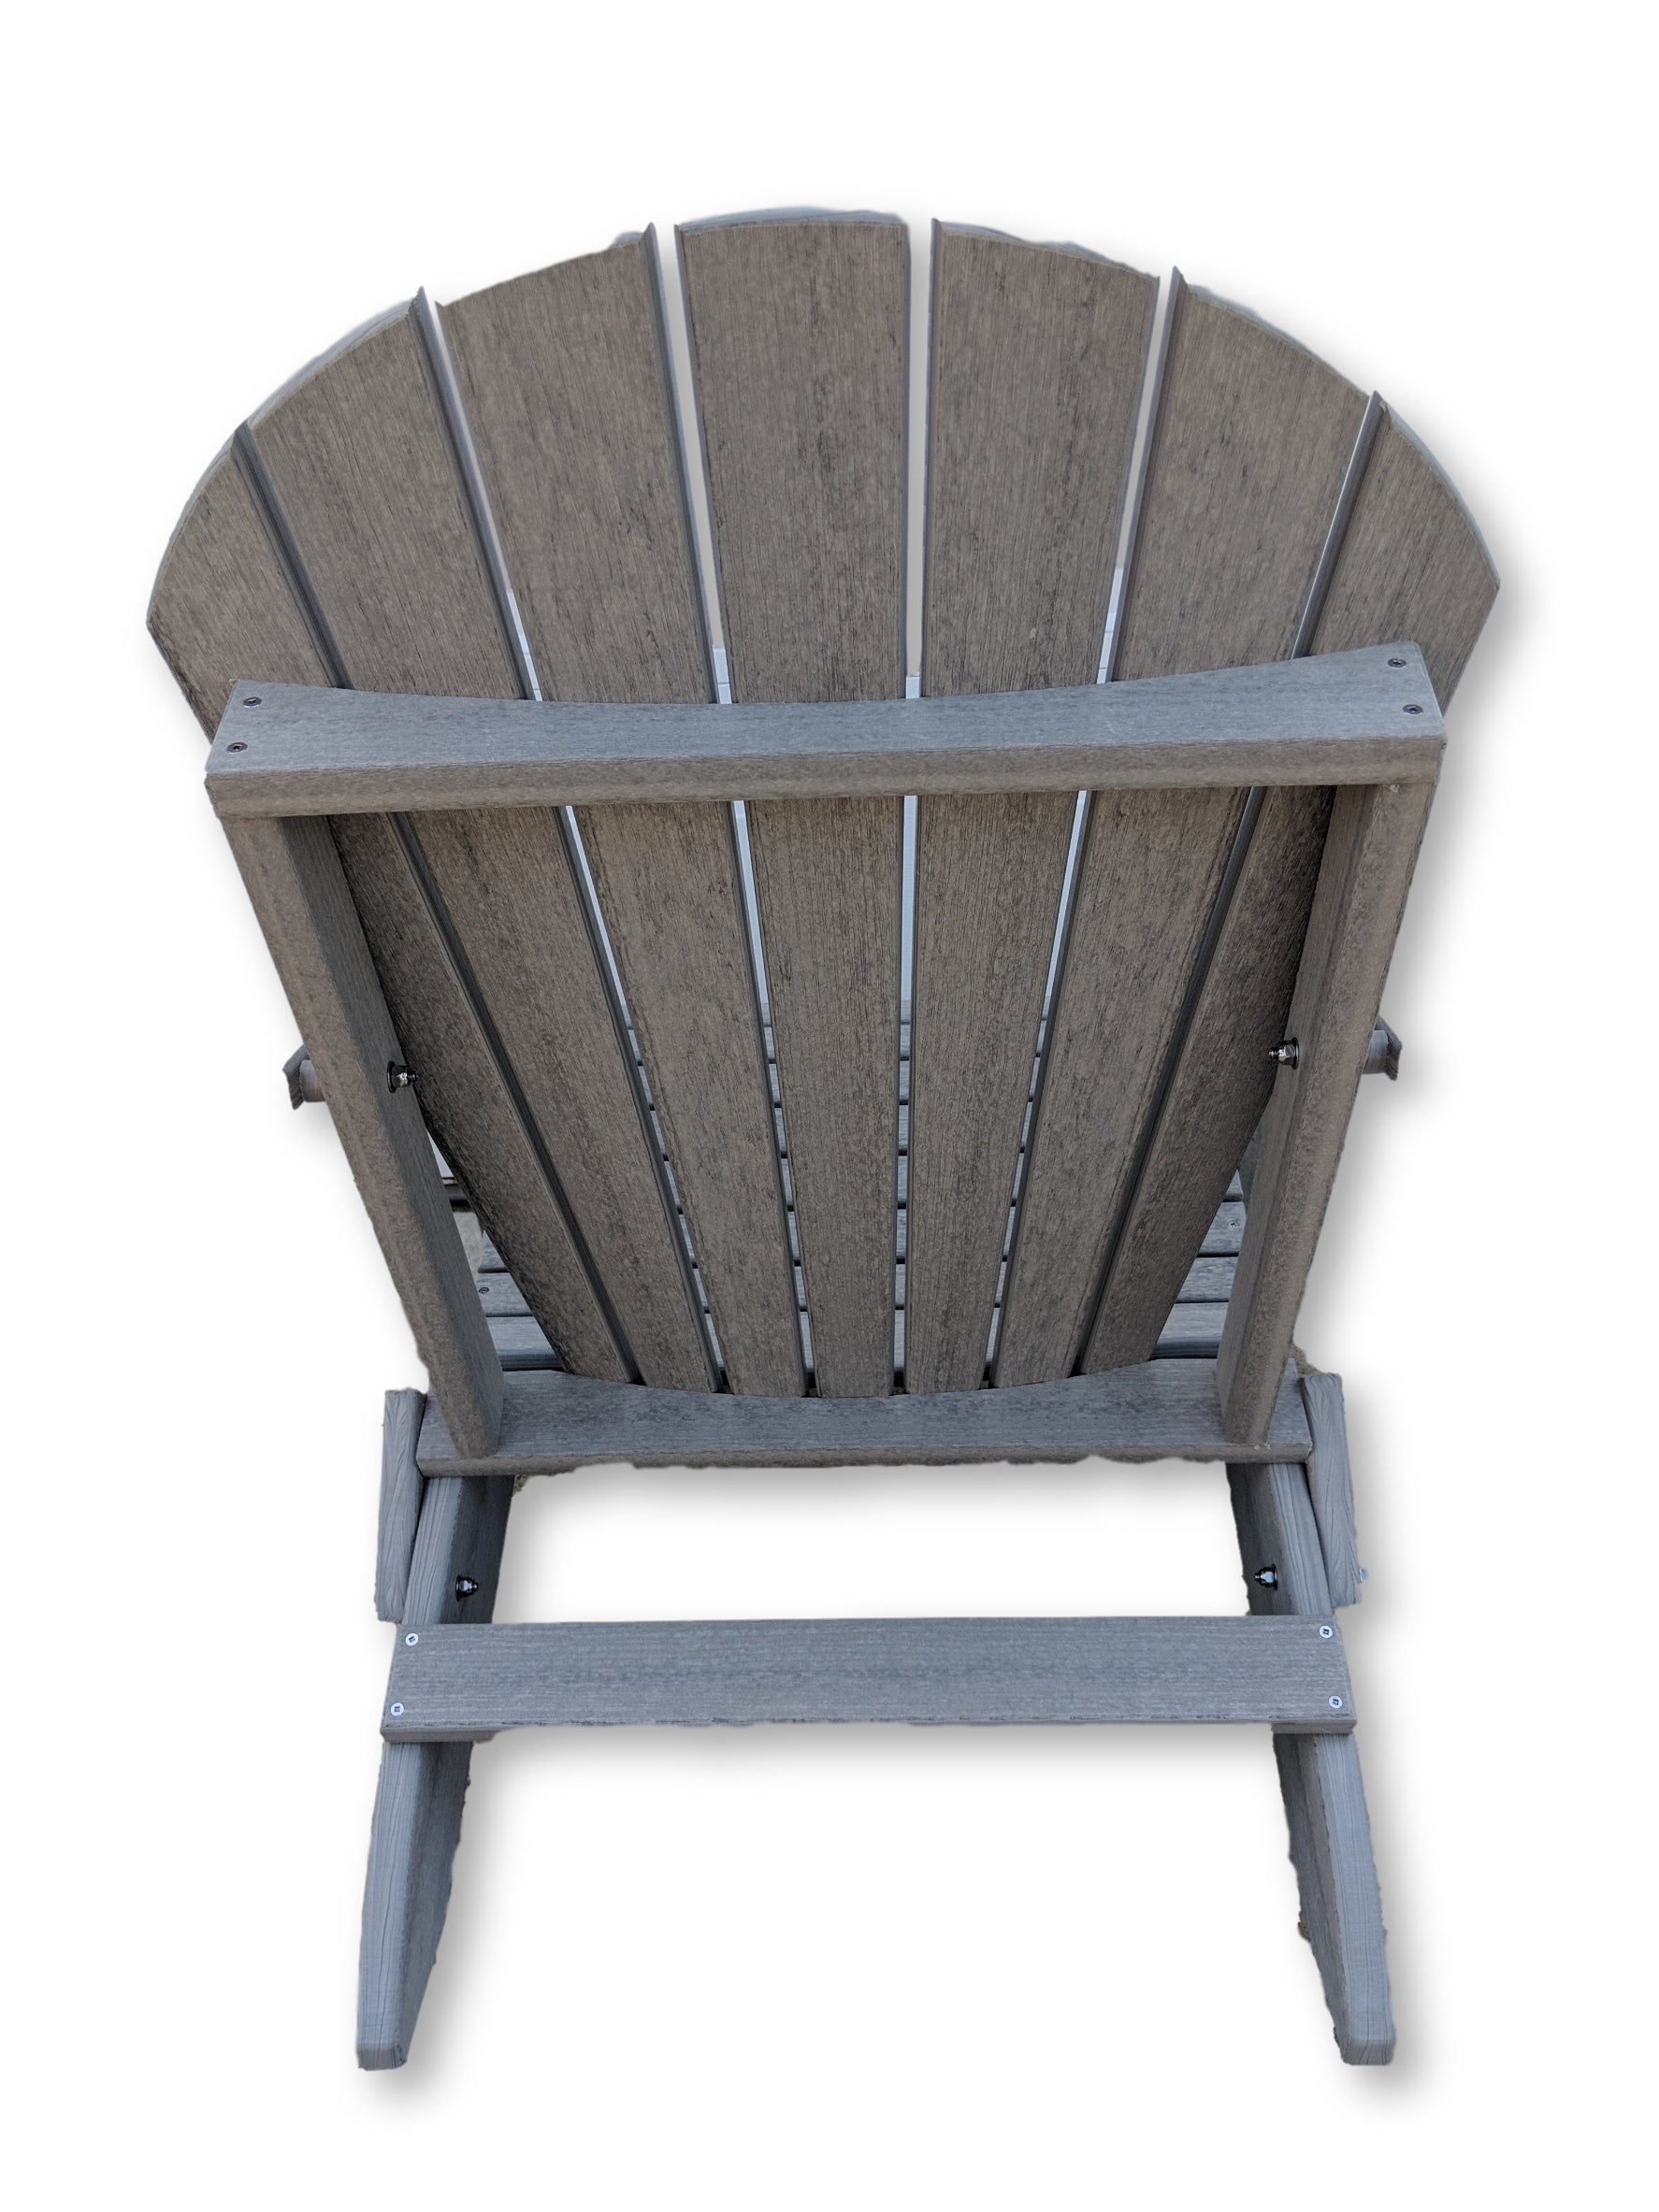 Driftwood Gray Folding Adirondack Chair with Cup Holders